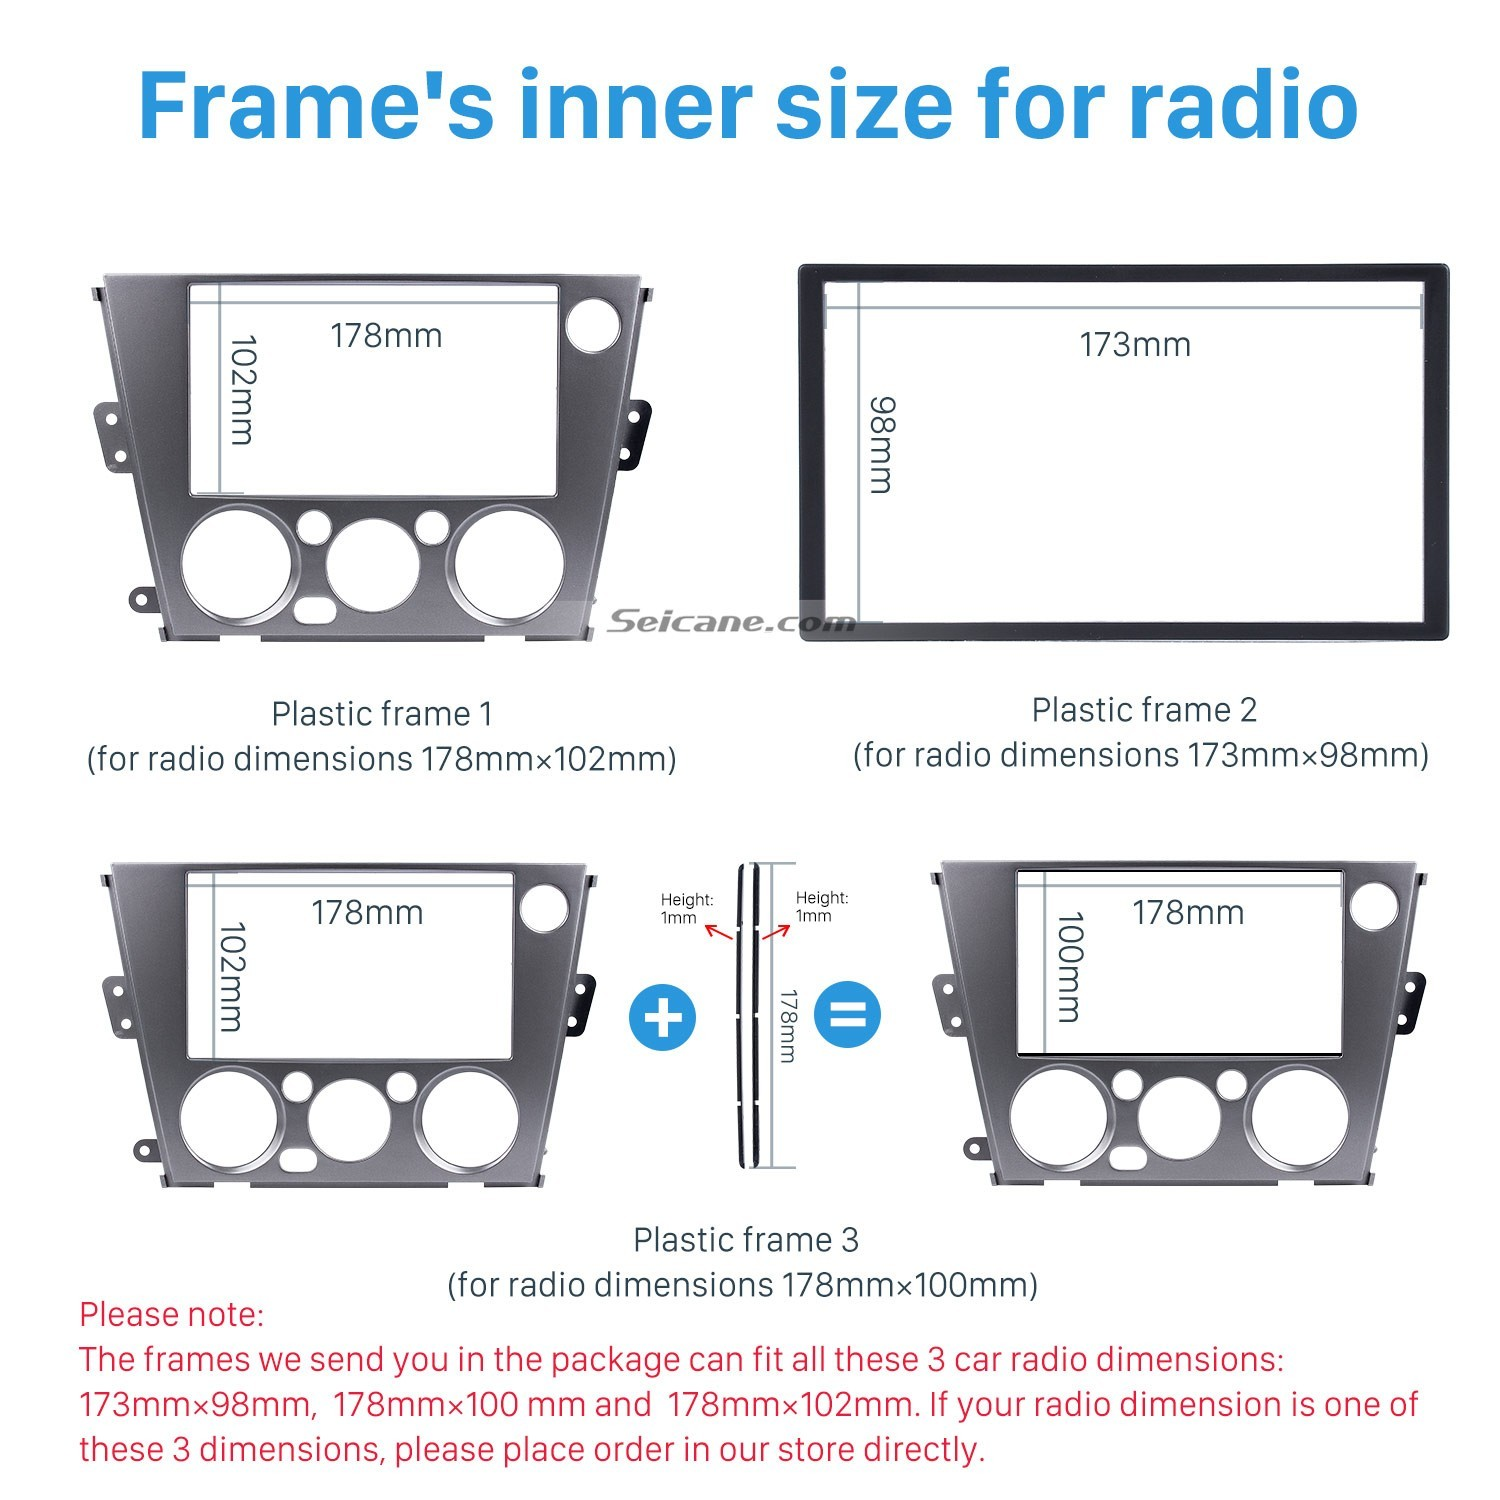 2002 Subaru Outback Parts Diagram How To Set Timing Belt B4 2din Car Radio Fascia For 2005 2009 Legacy Left